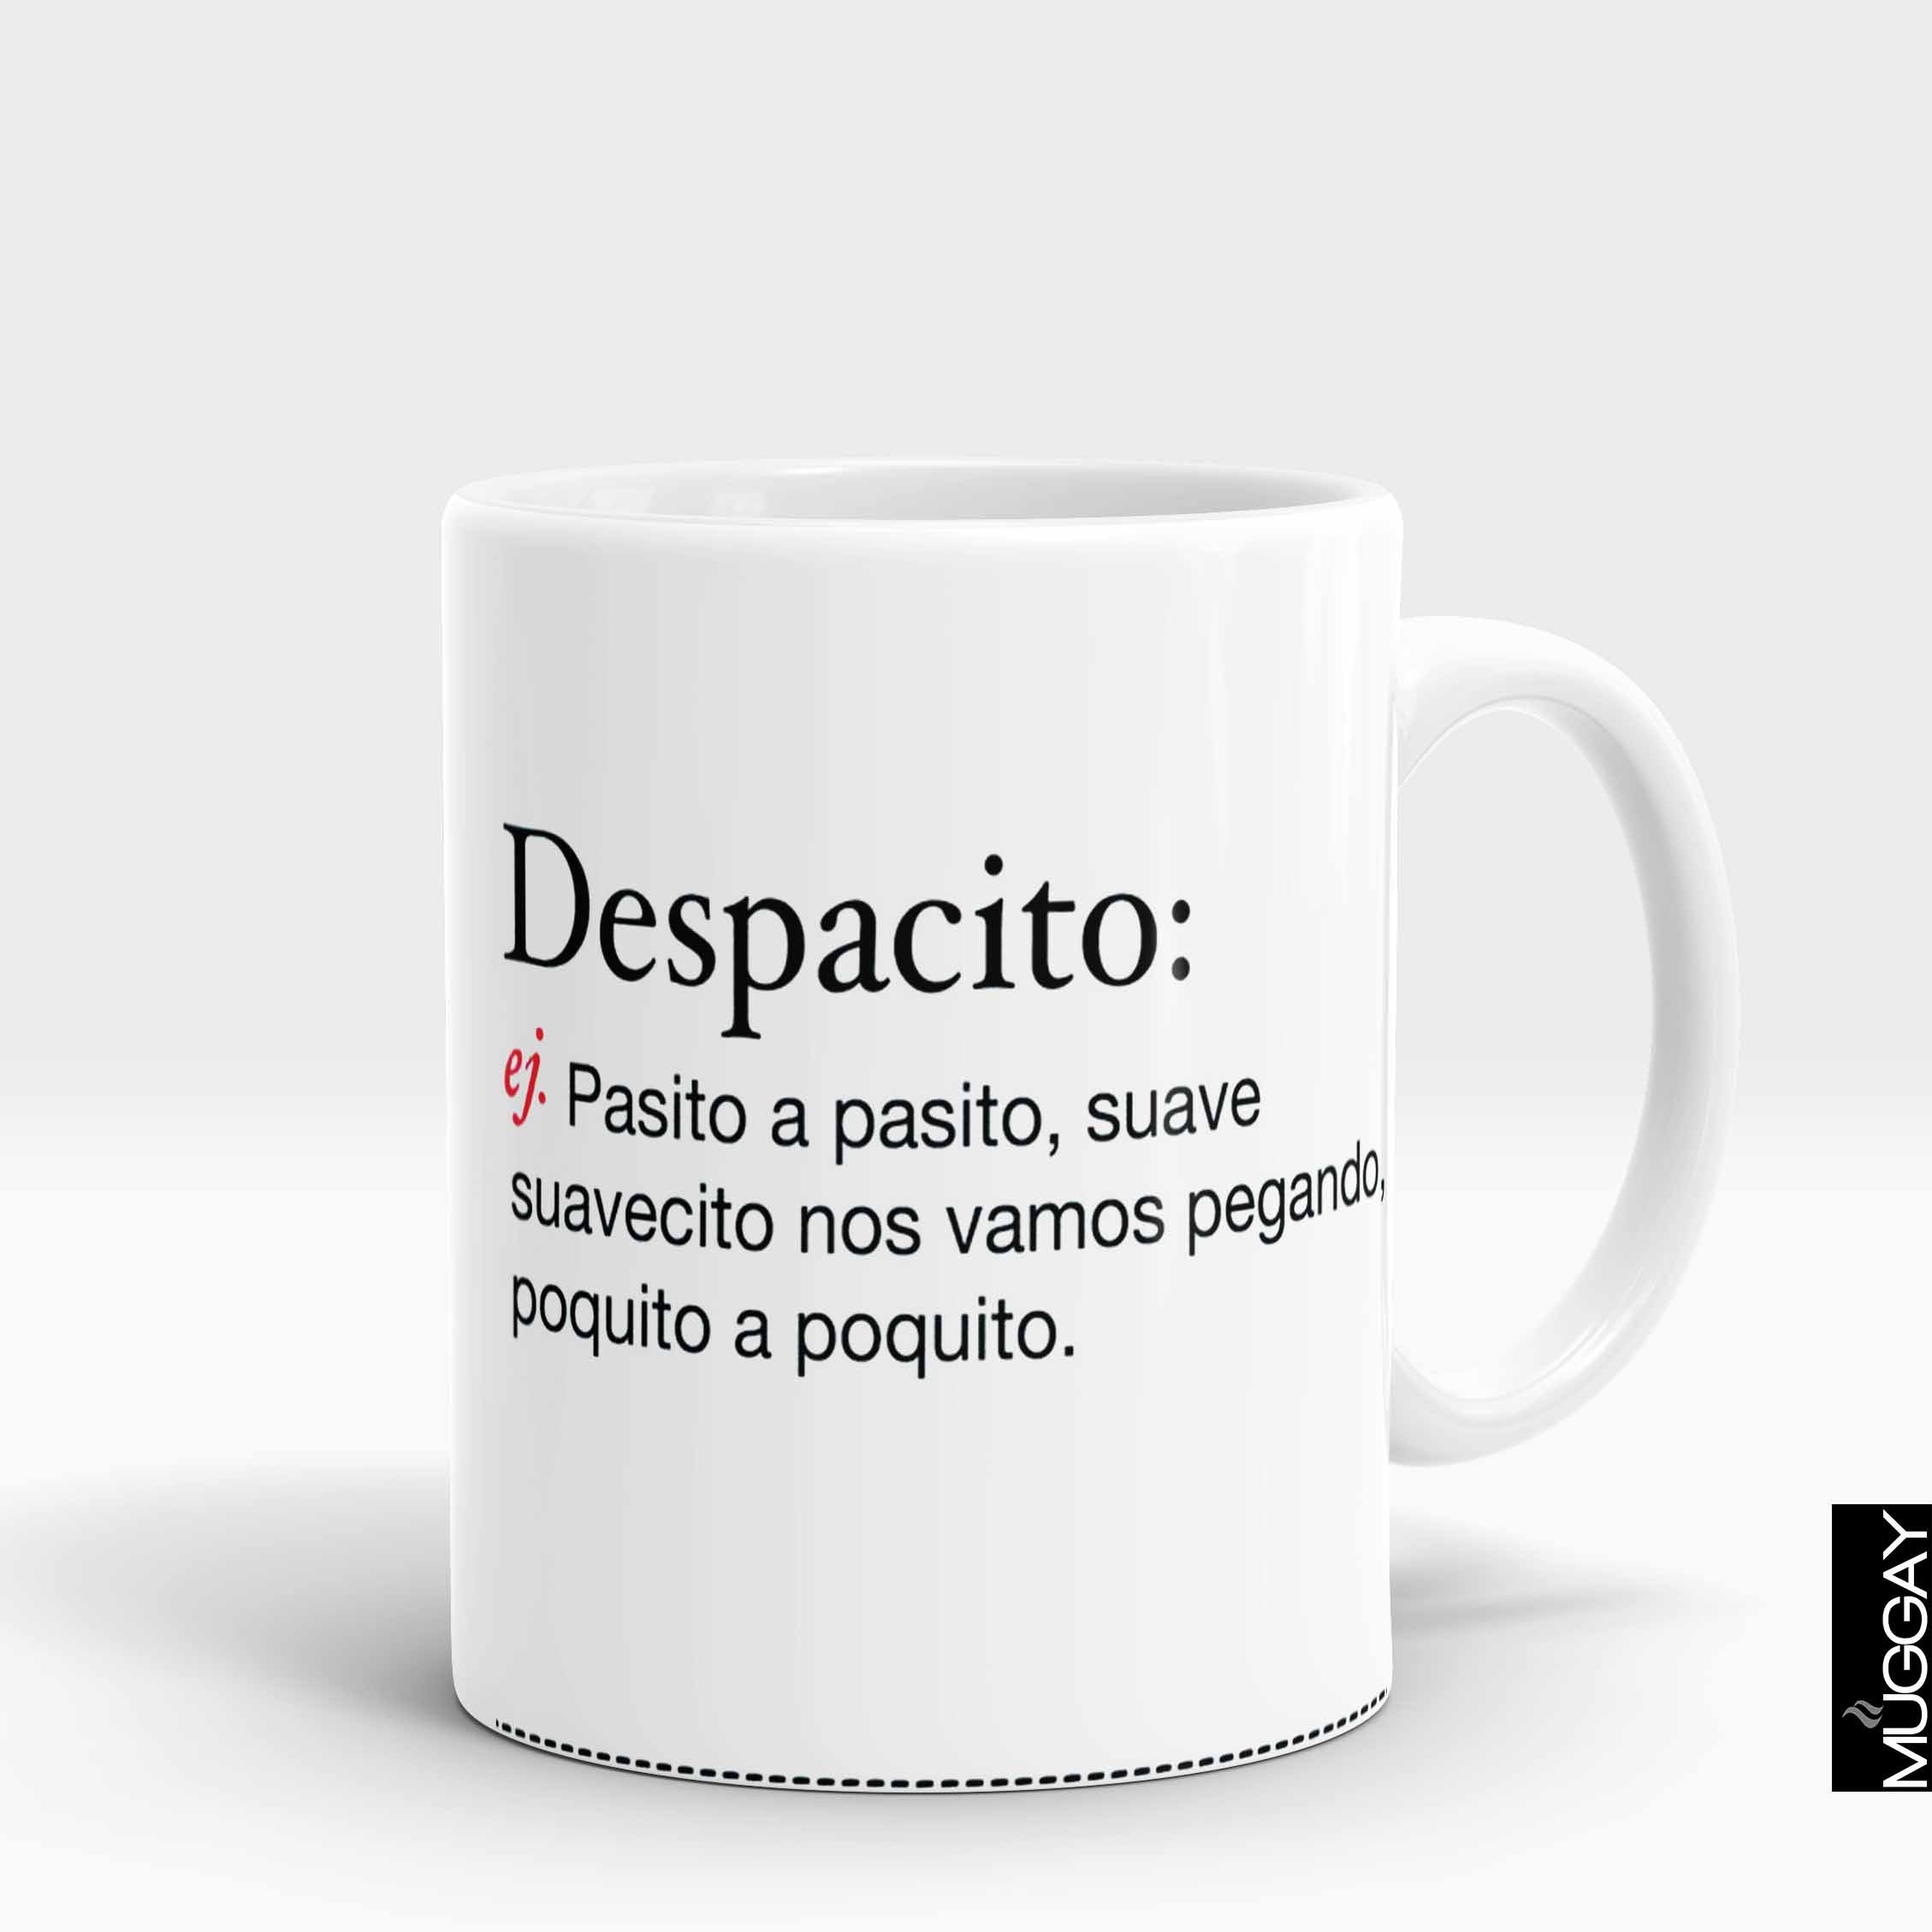 Decpacito Lyrics - Muggay.com - Mugs - Printing shop - truck Art mugs - Mug printing - Customized printing - Digital printing - Muggay